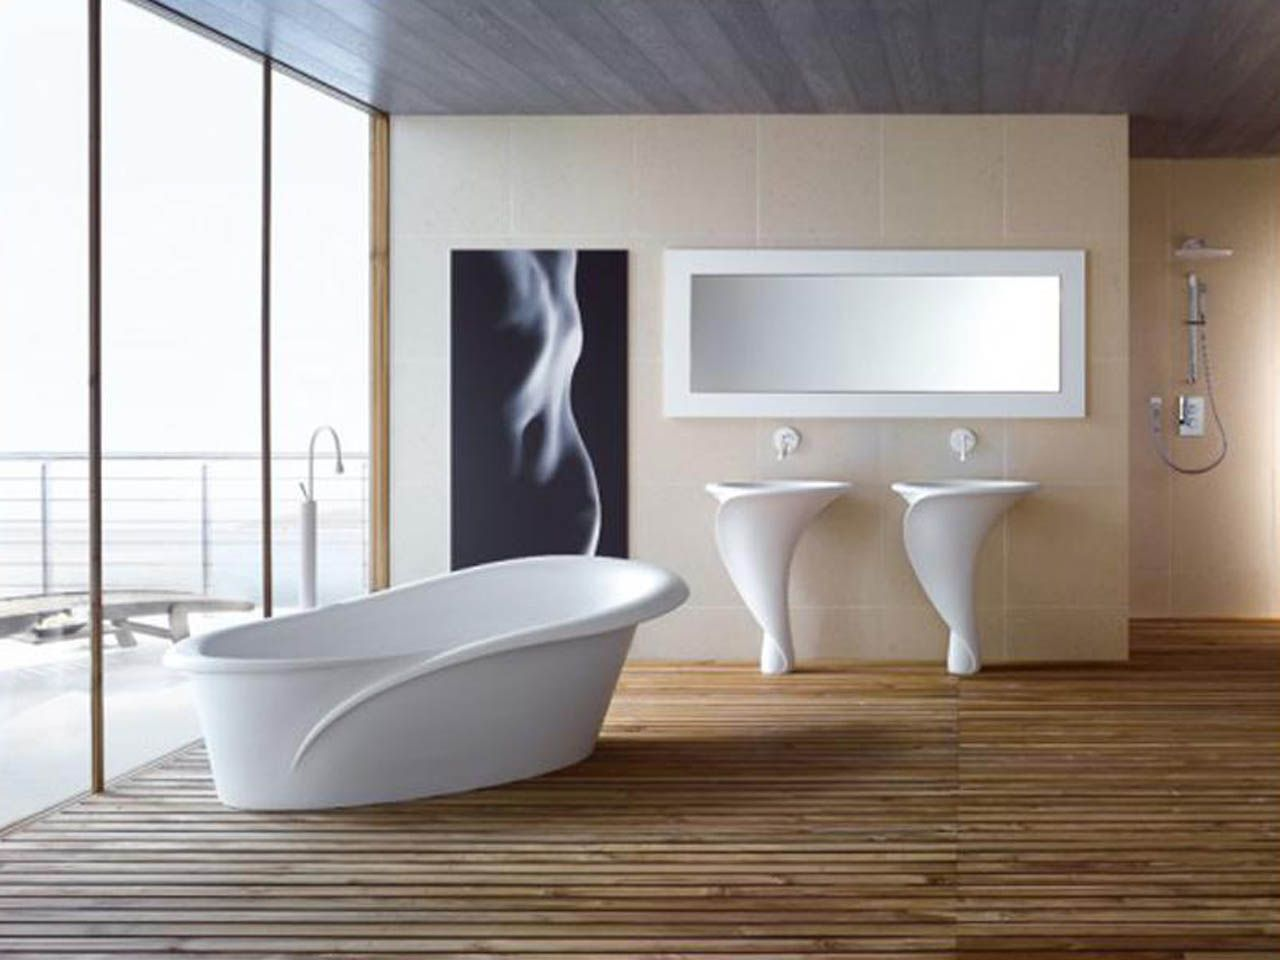 exquisite bathroom design ideas. Bathroom Design  Exquisite Sexy Twisting Italian Interior Ideas With White Washstand Body Size